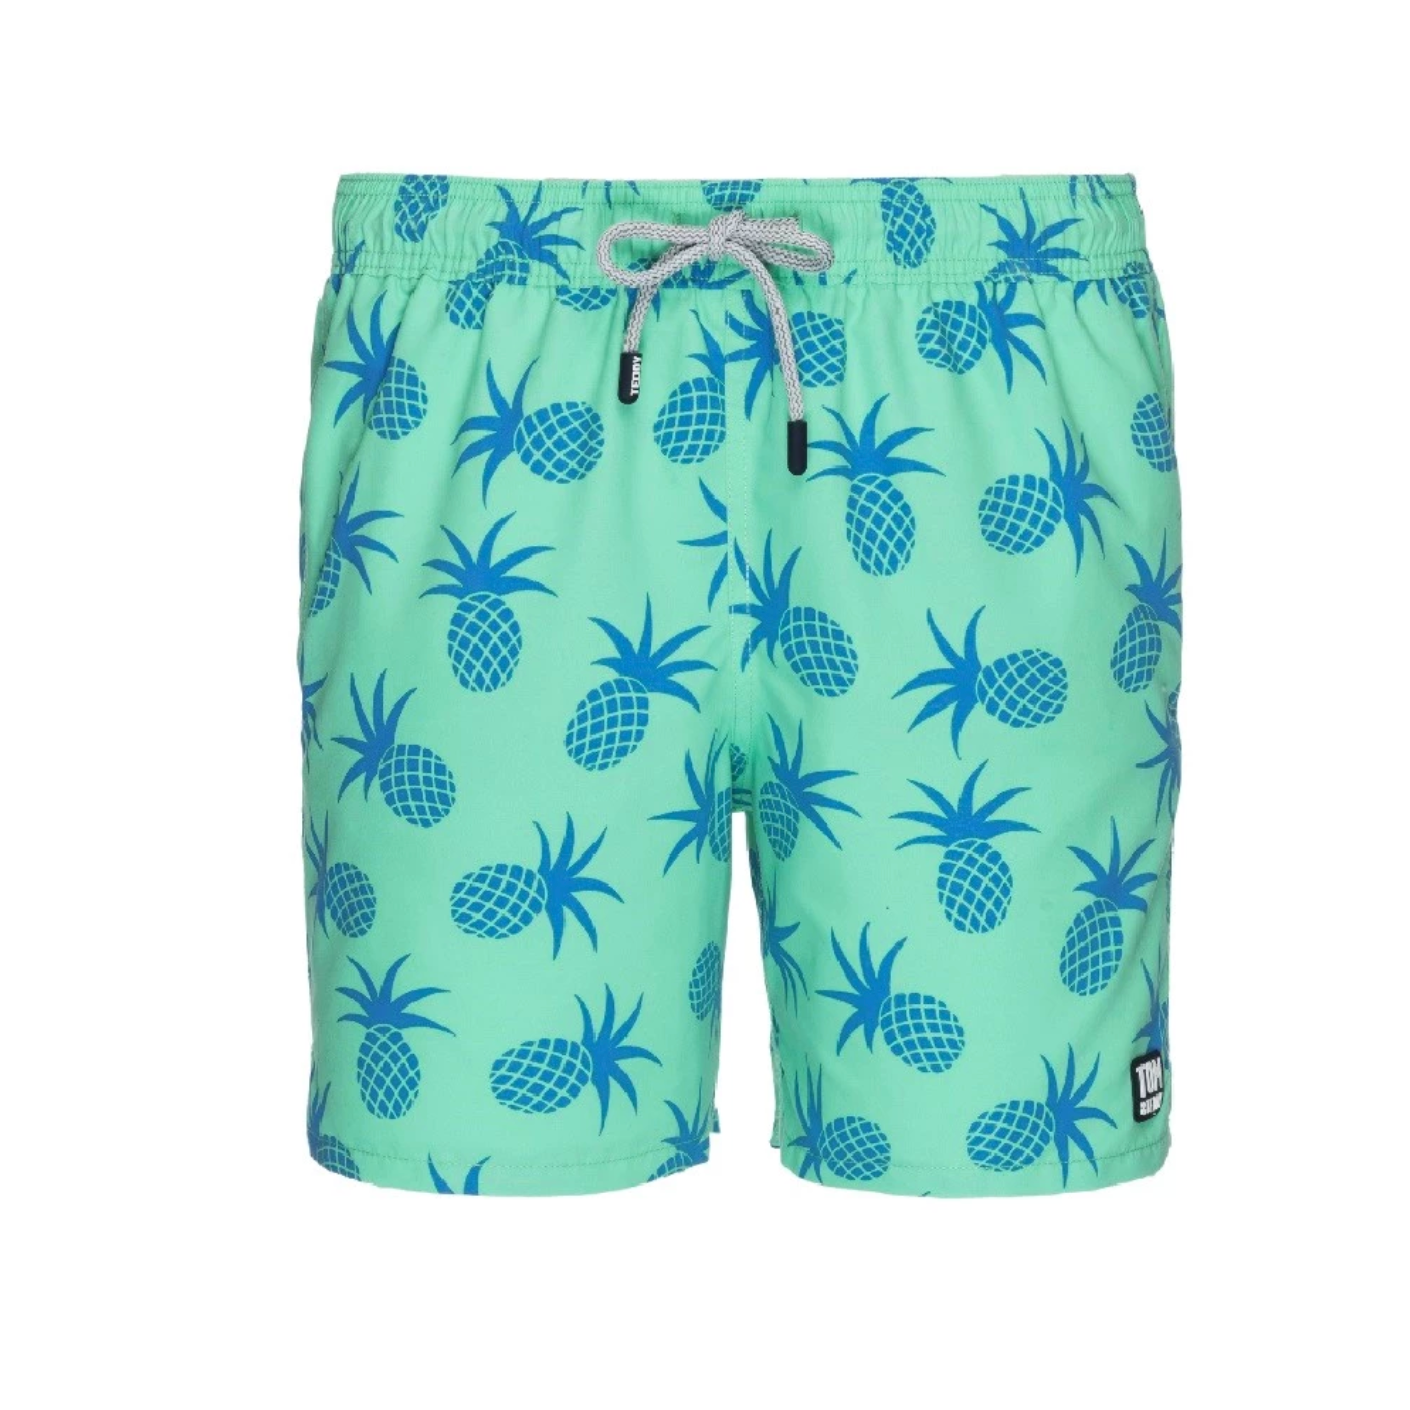 TOM & TEDDY - Mens Jade Green Pineapple